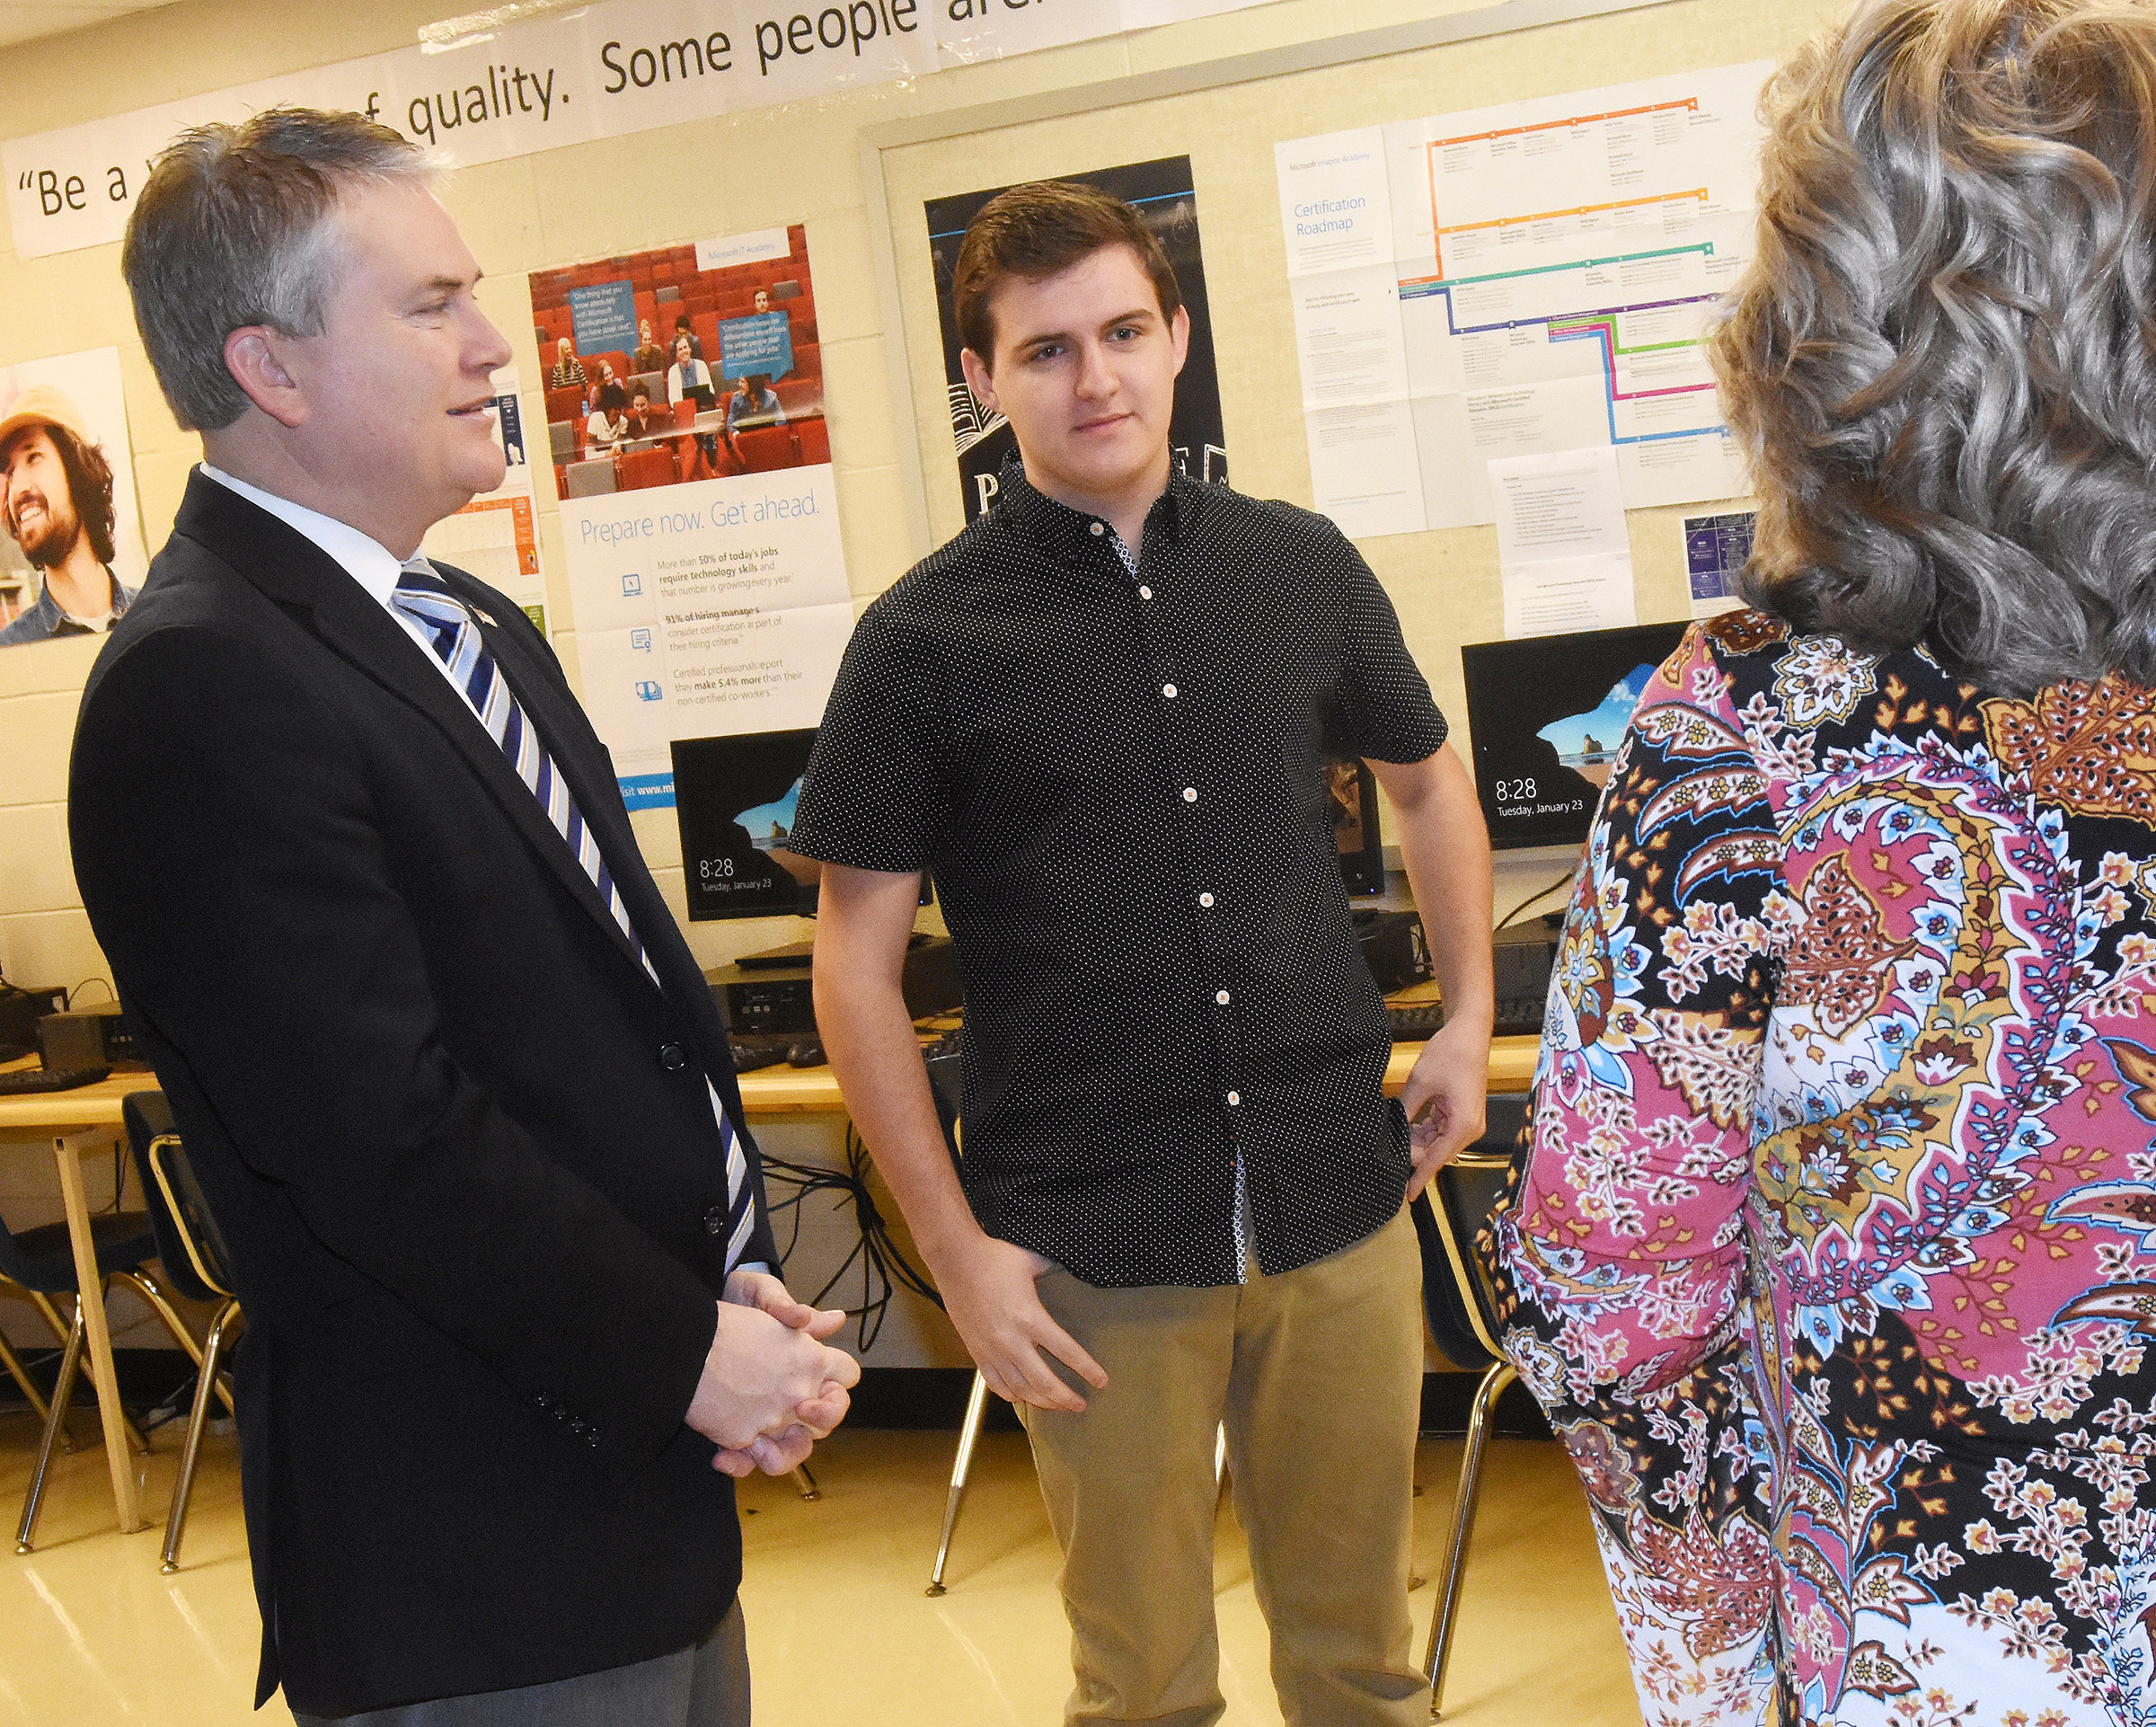 U.S. Rep. James Comer, R-Ky., visited CHS on Tuesday, Jan. 23, to meet with CHS AP computer science students. Comer, at left, is pictured with senior Austin Fitzgerald and computer science teacher Sonya Kessler. Fitzgerald and fellow CHS senior Christian Berry recently won the First District 2017 Congressional App Challenge.